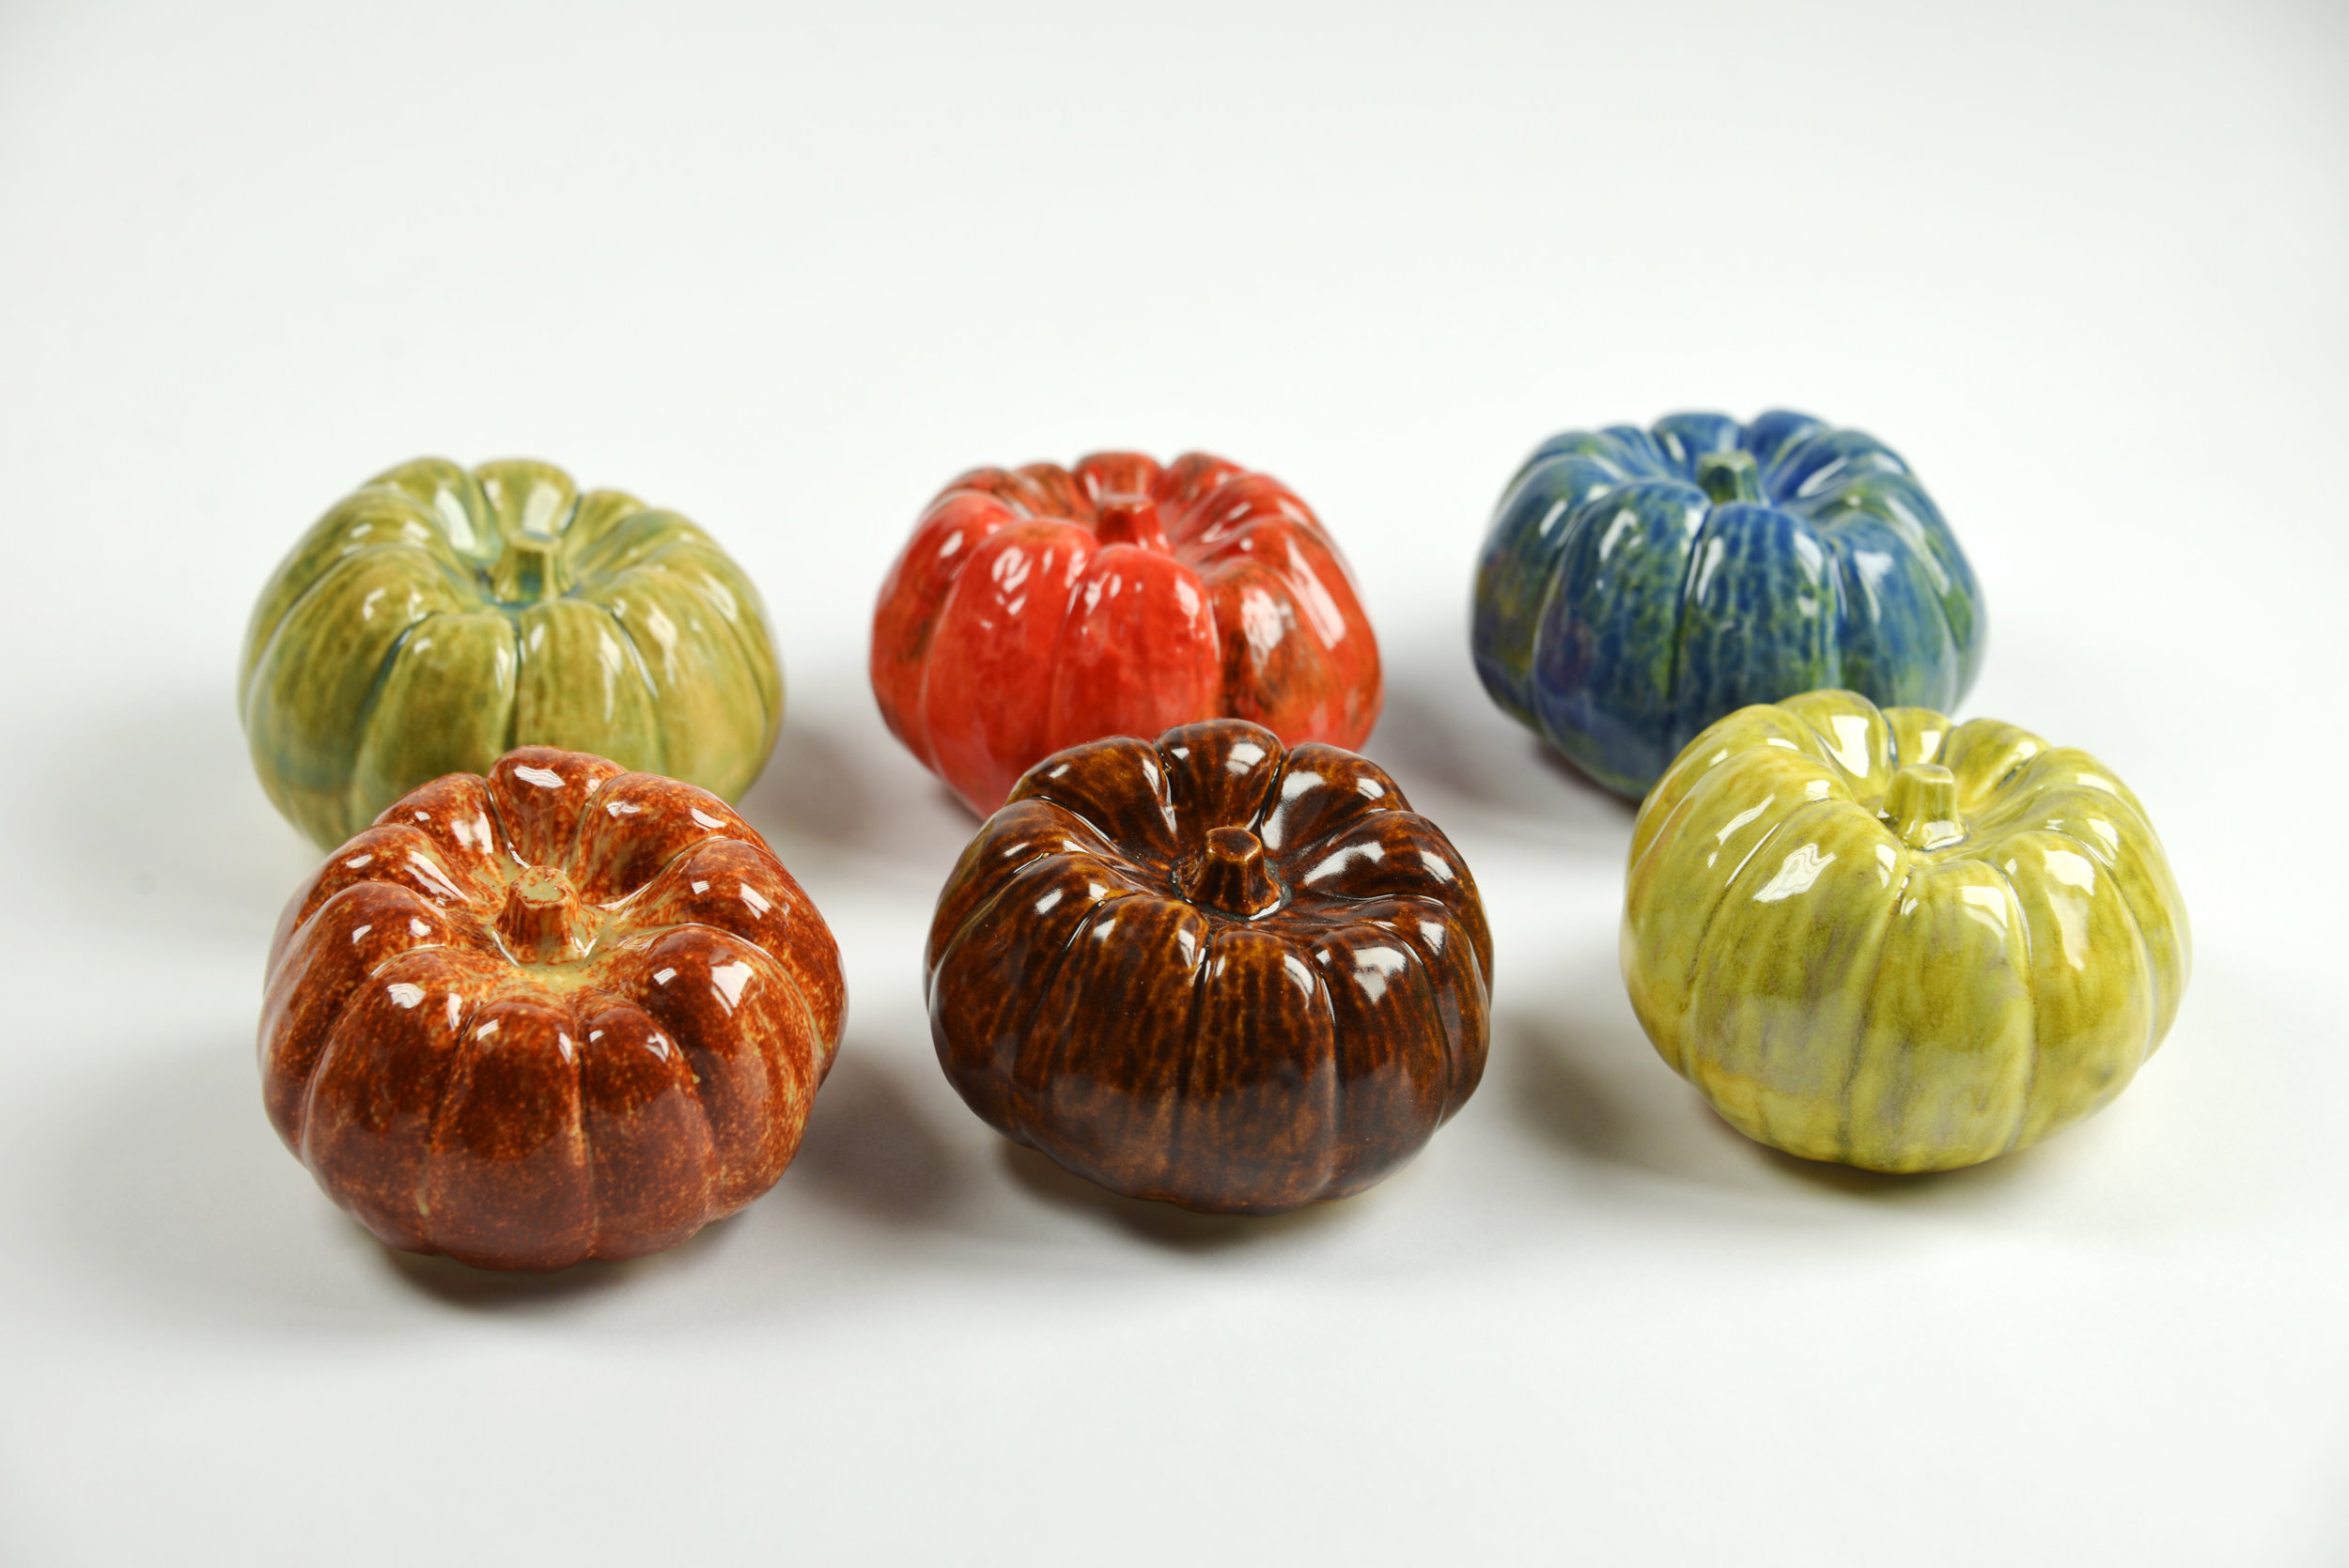 Above: Pepper mold made by Kate Blacklock, pieces cast, shaped, fired, and glazed by Megan Lee